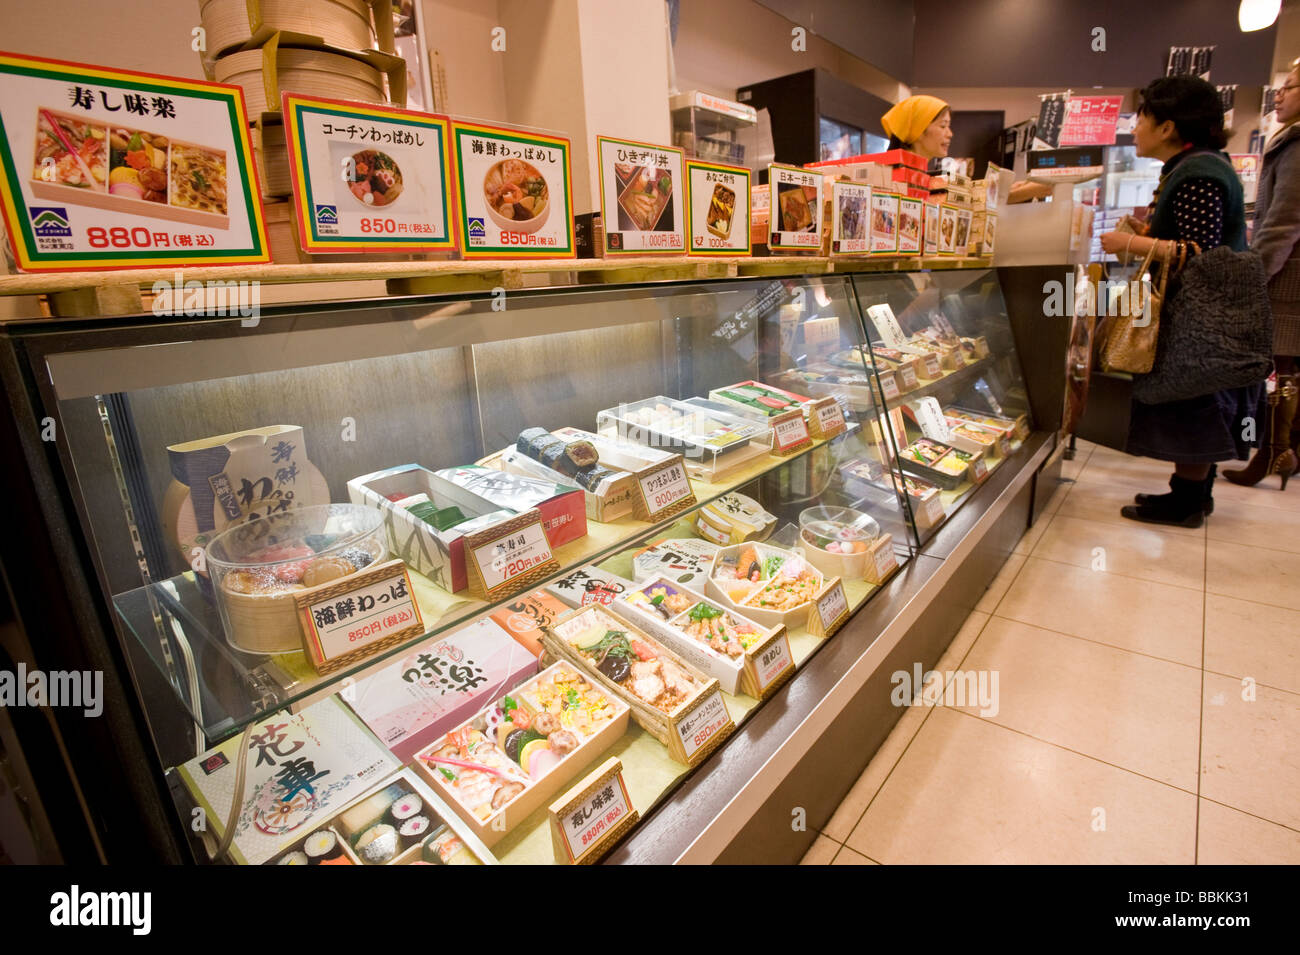 display case shows bento boxes for sale at shunmisaisai store in stock photo 24403653 alamy. Black Bedroom Furniture Sets. Home Design Ideas